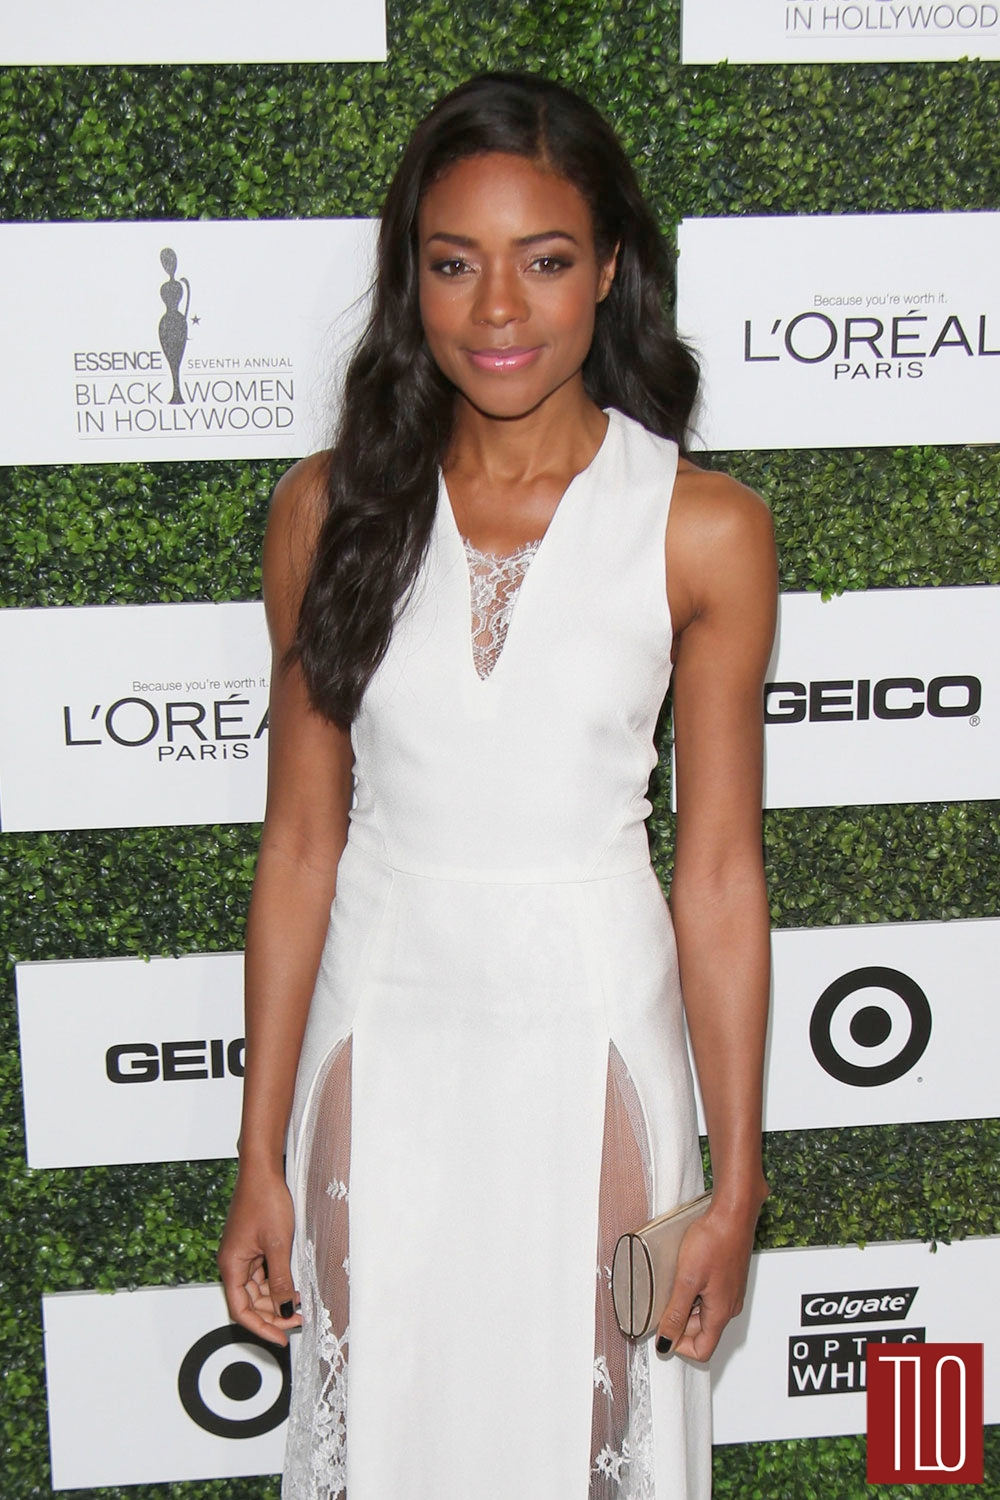 Naomie-Harris-Wes-Gordon-ESSENCE-Black-Women-Hollywood-Tom-Lorenzo-Site-TLO (1)